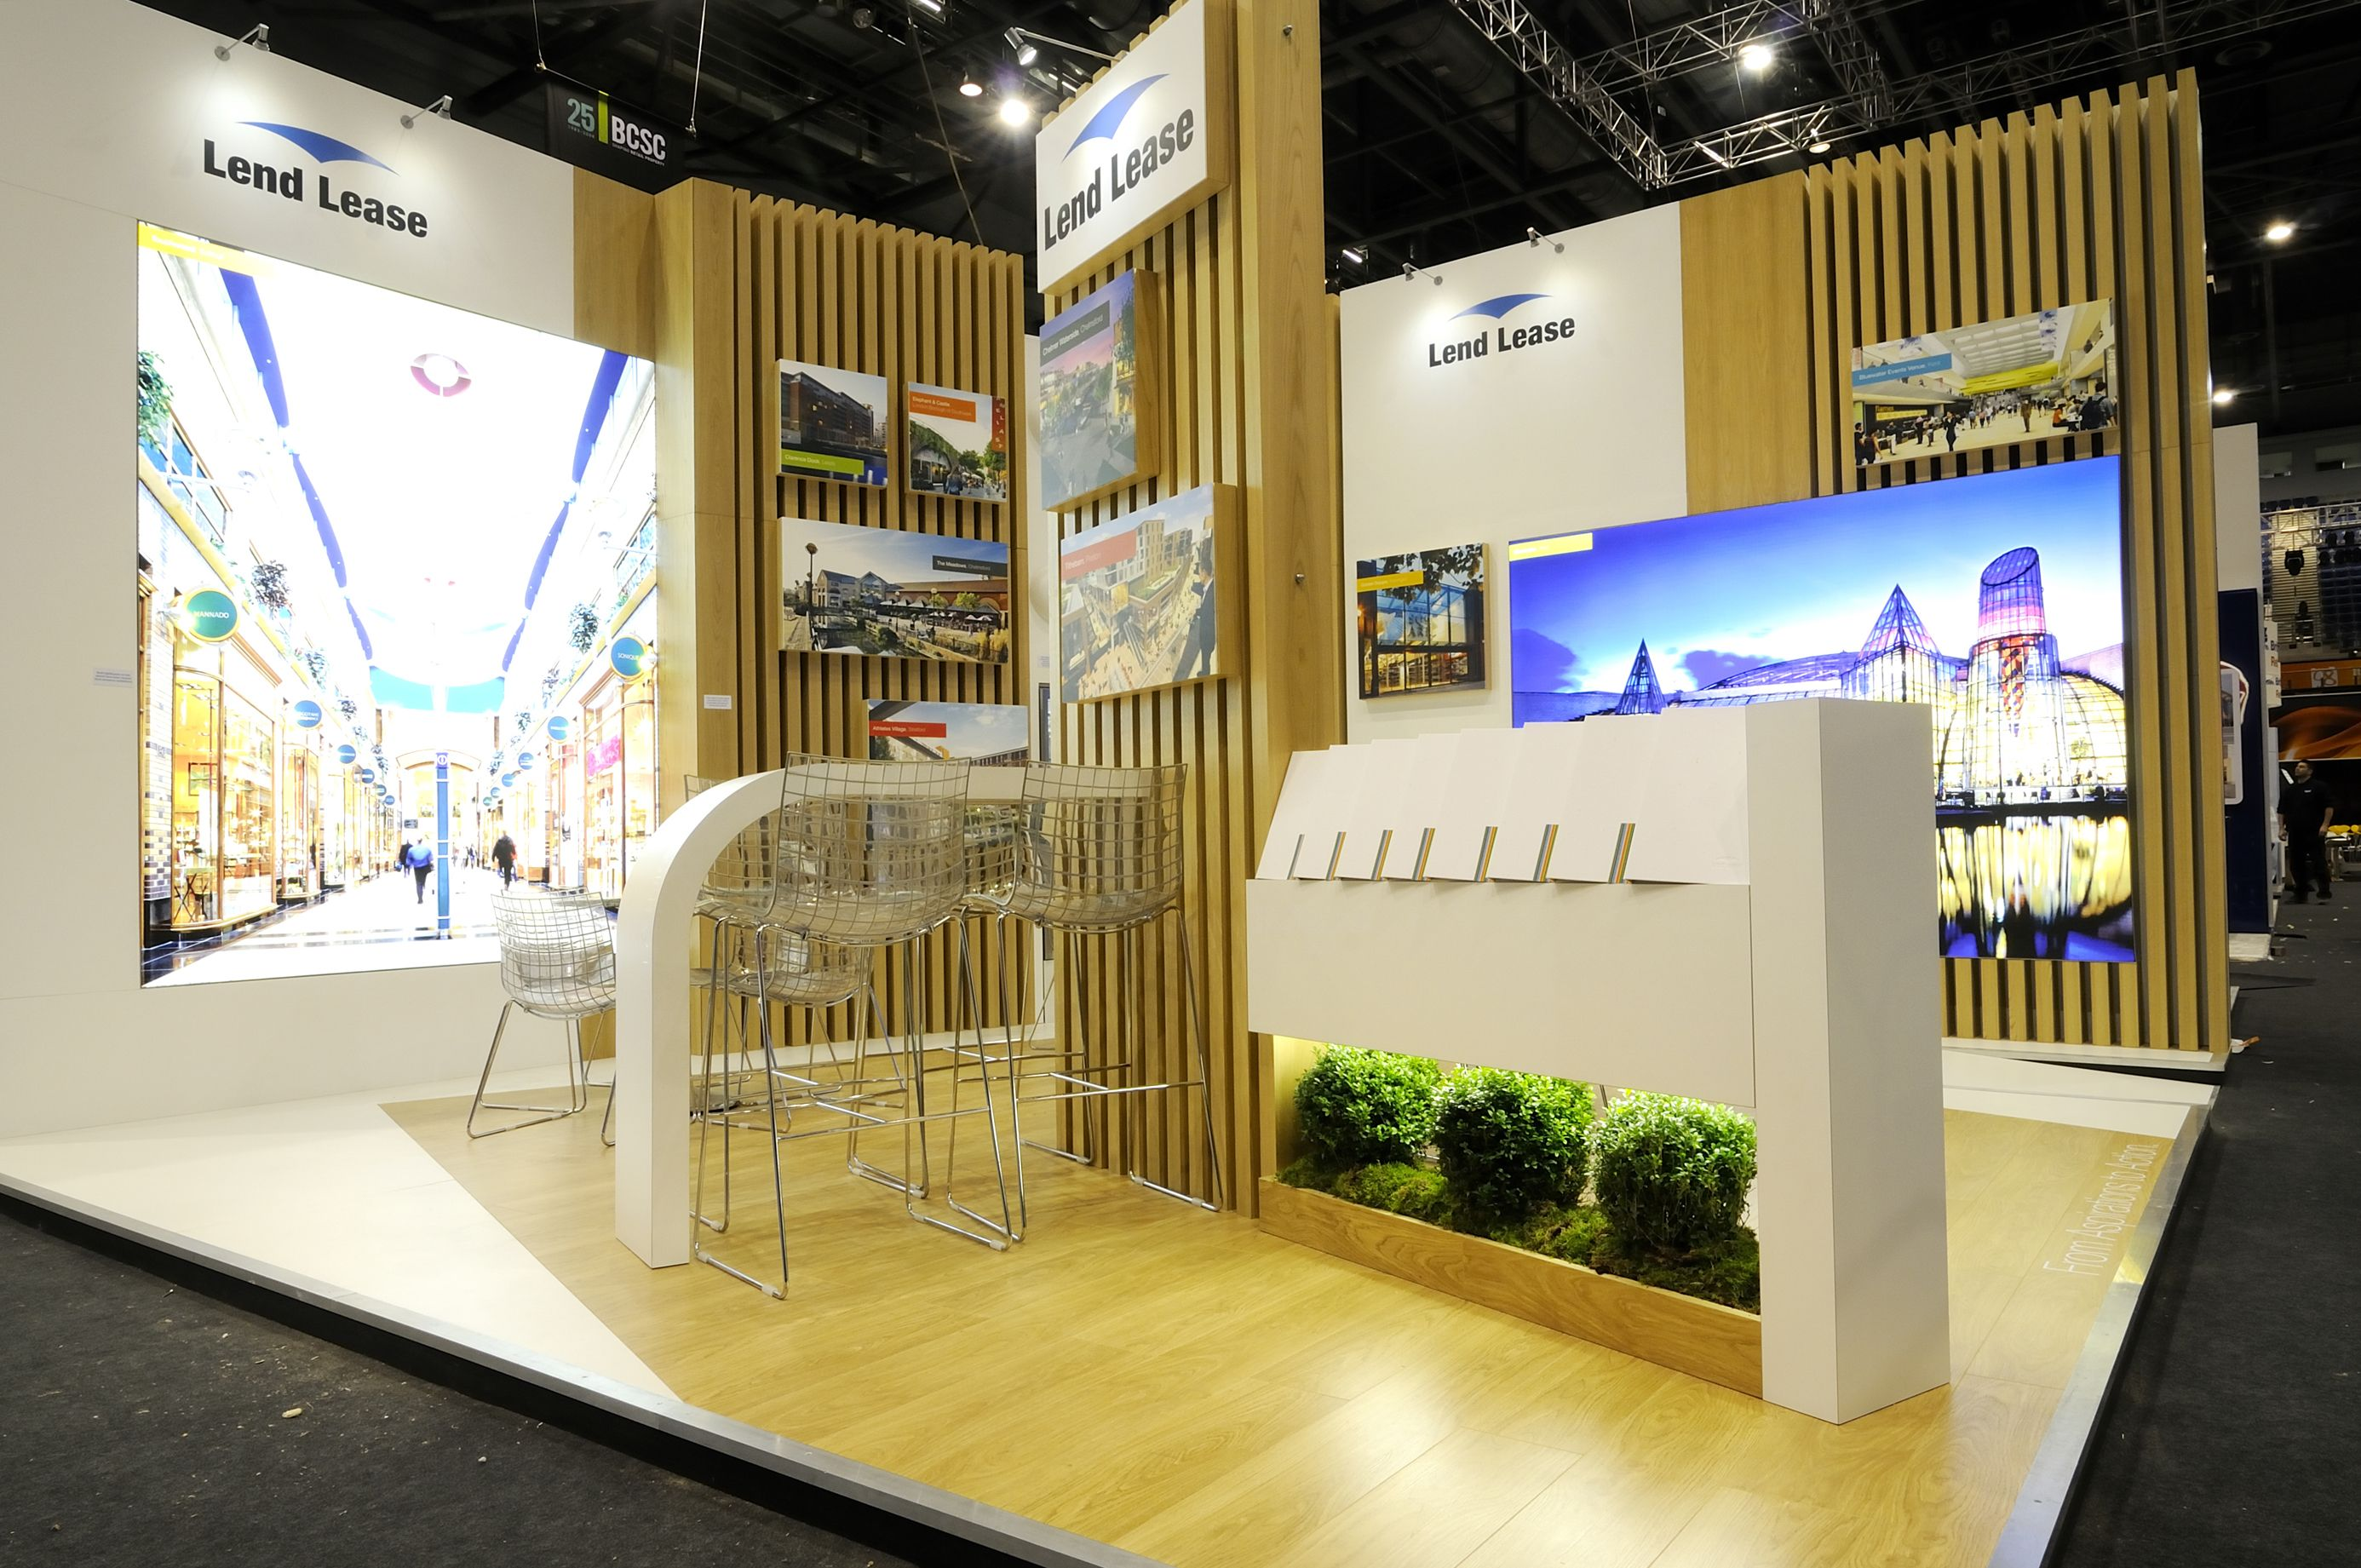 Glass Shed Exhibition Stand Design : Lend lease exhibition stand by sovereign exhibitions